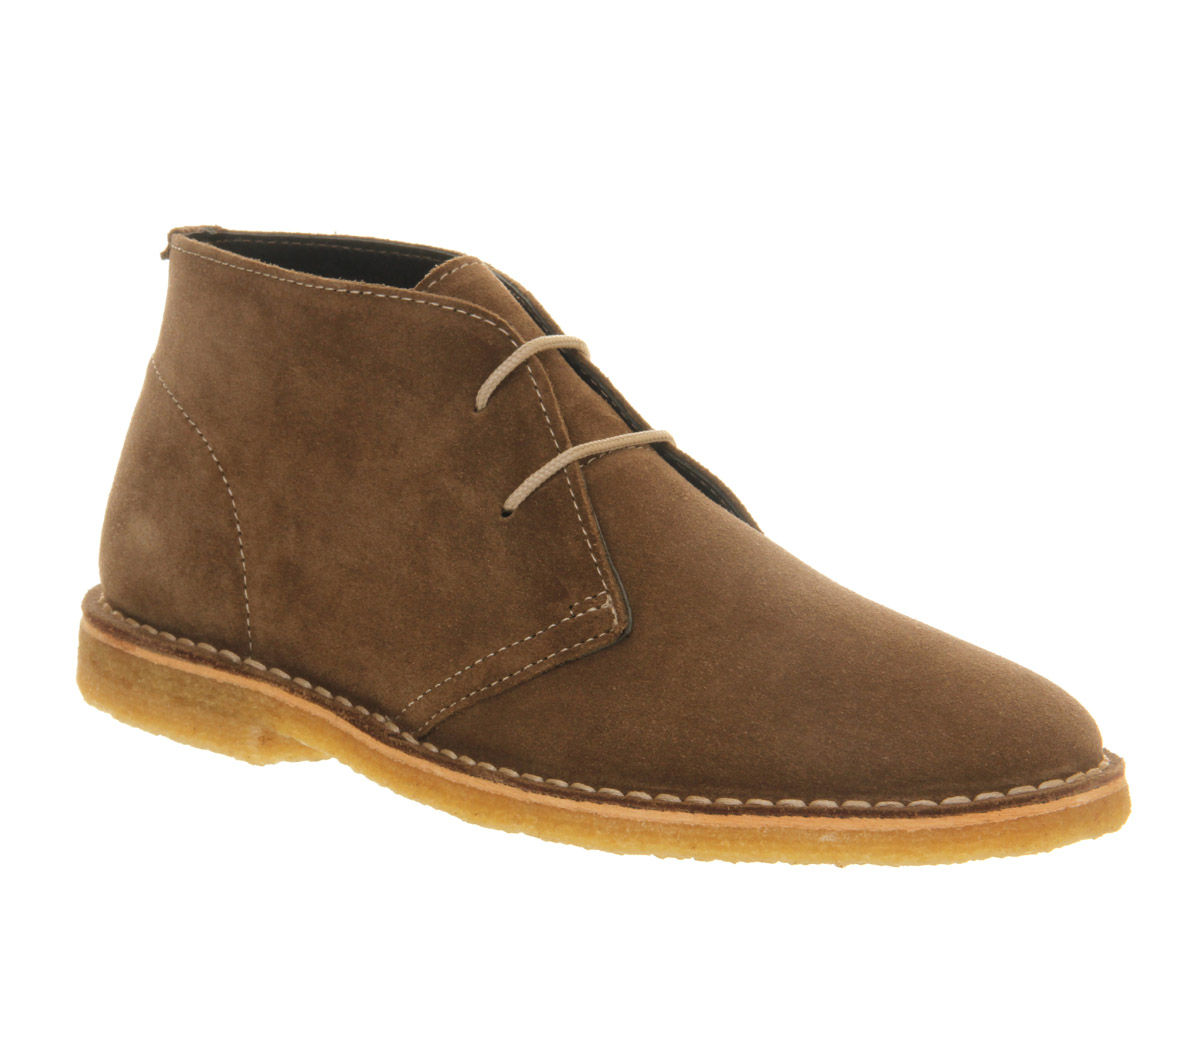 Mens Desert Boots. The Desert Boot is a symbol for cultures in all corners of the globe. It's silhouette defines cool, intelligence and style for decades to come.